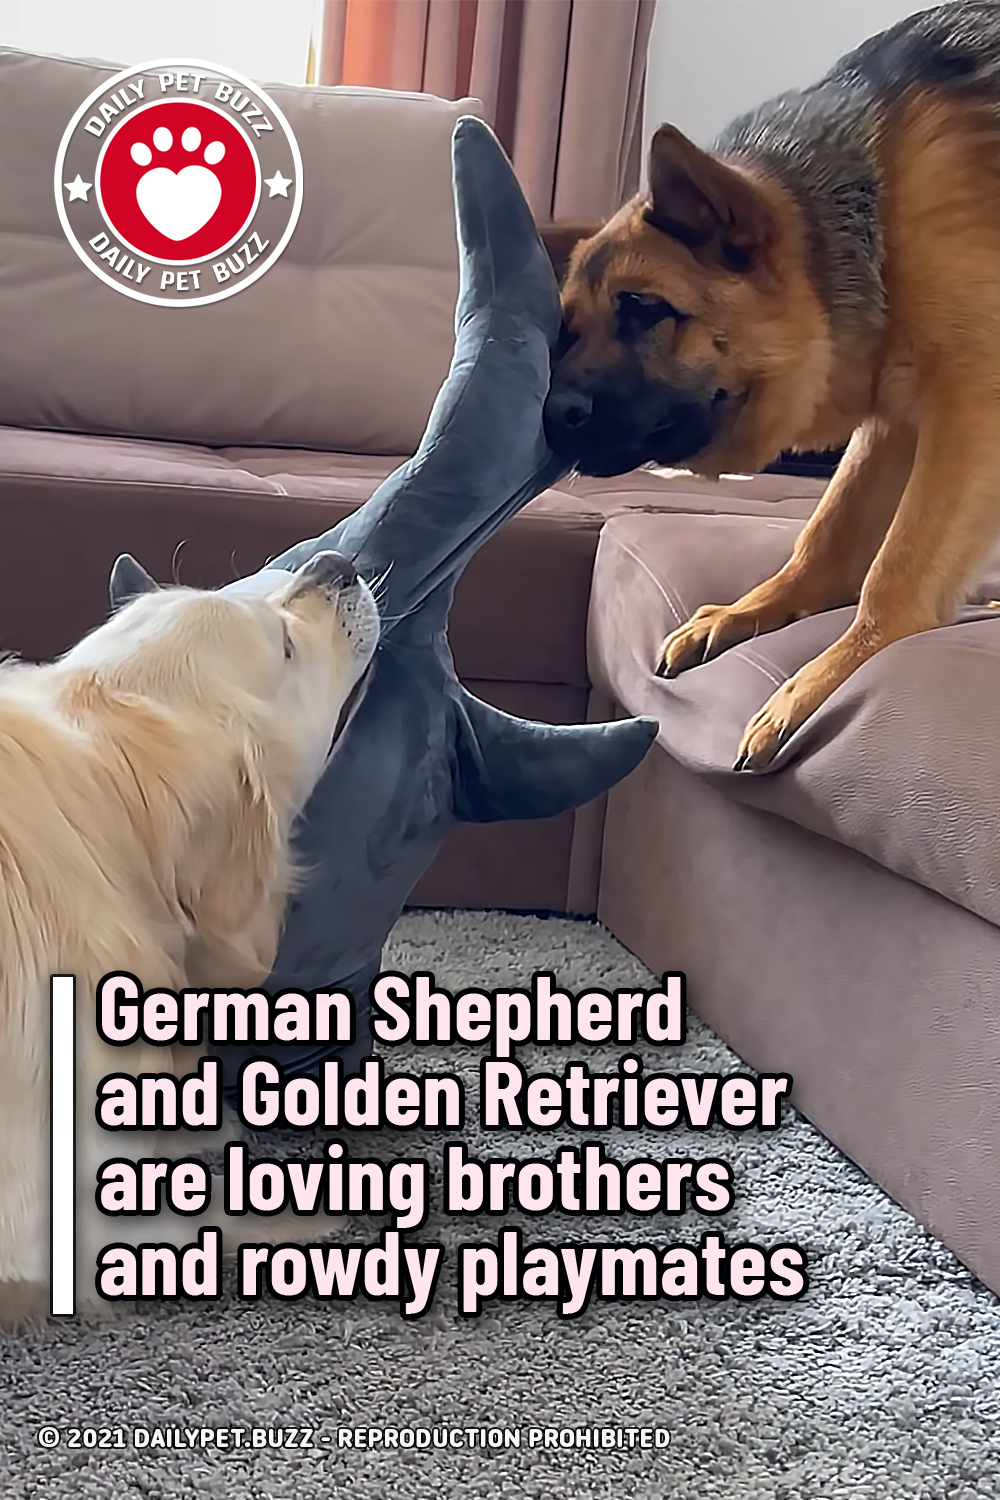 German Shepherd and Golden Retriever are loving brothers and rowdy playmates